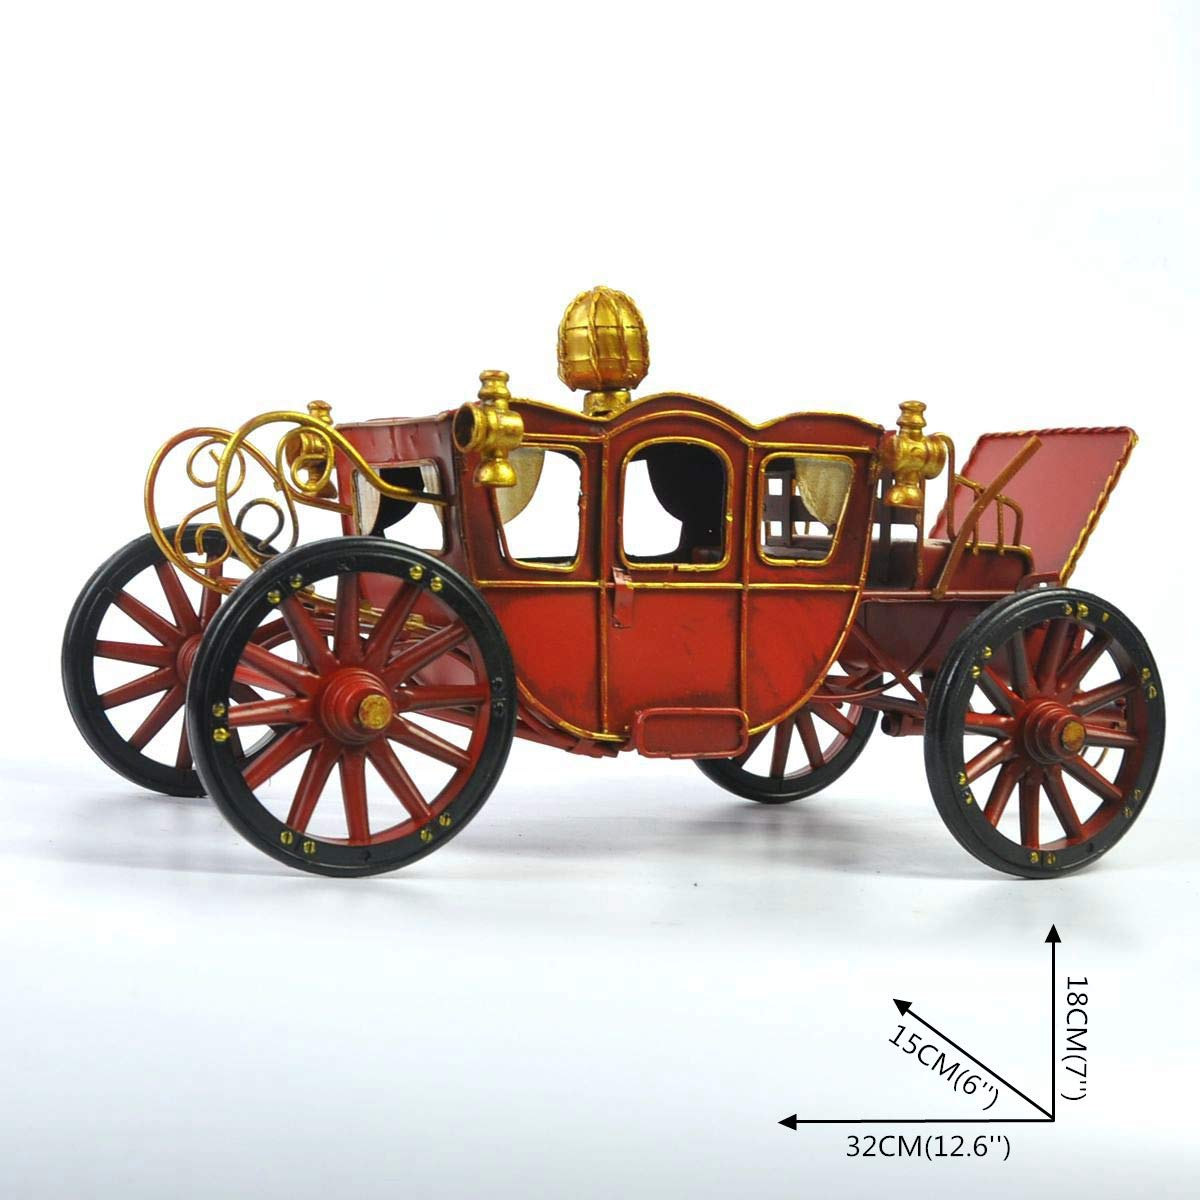 Car Models Crafts Decoration Toy, Tinplate Car Photography Props, Props, Props, Simple Home Perfect Retro Adornment, The Best Gift for Boy (Palace Carriage) 0427f8